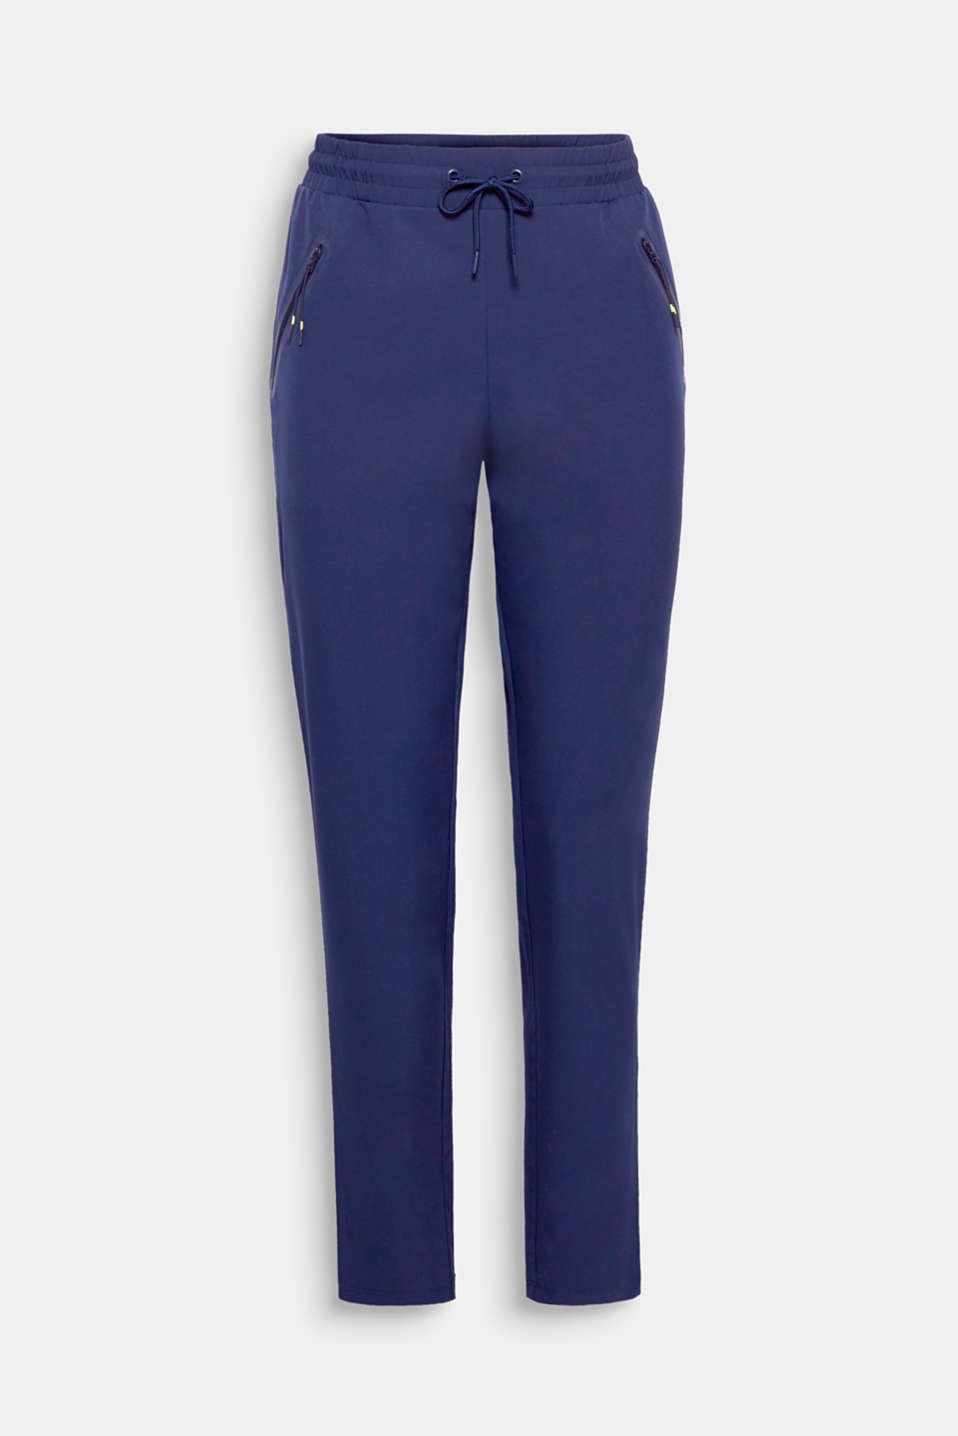 Comfortable, casual, functional: these active trousers made of lightweight fabric feature a comfortable elasticated waistband, rubberised zip pockets and E-DRY technology.